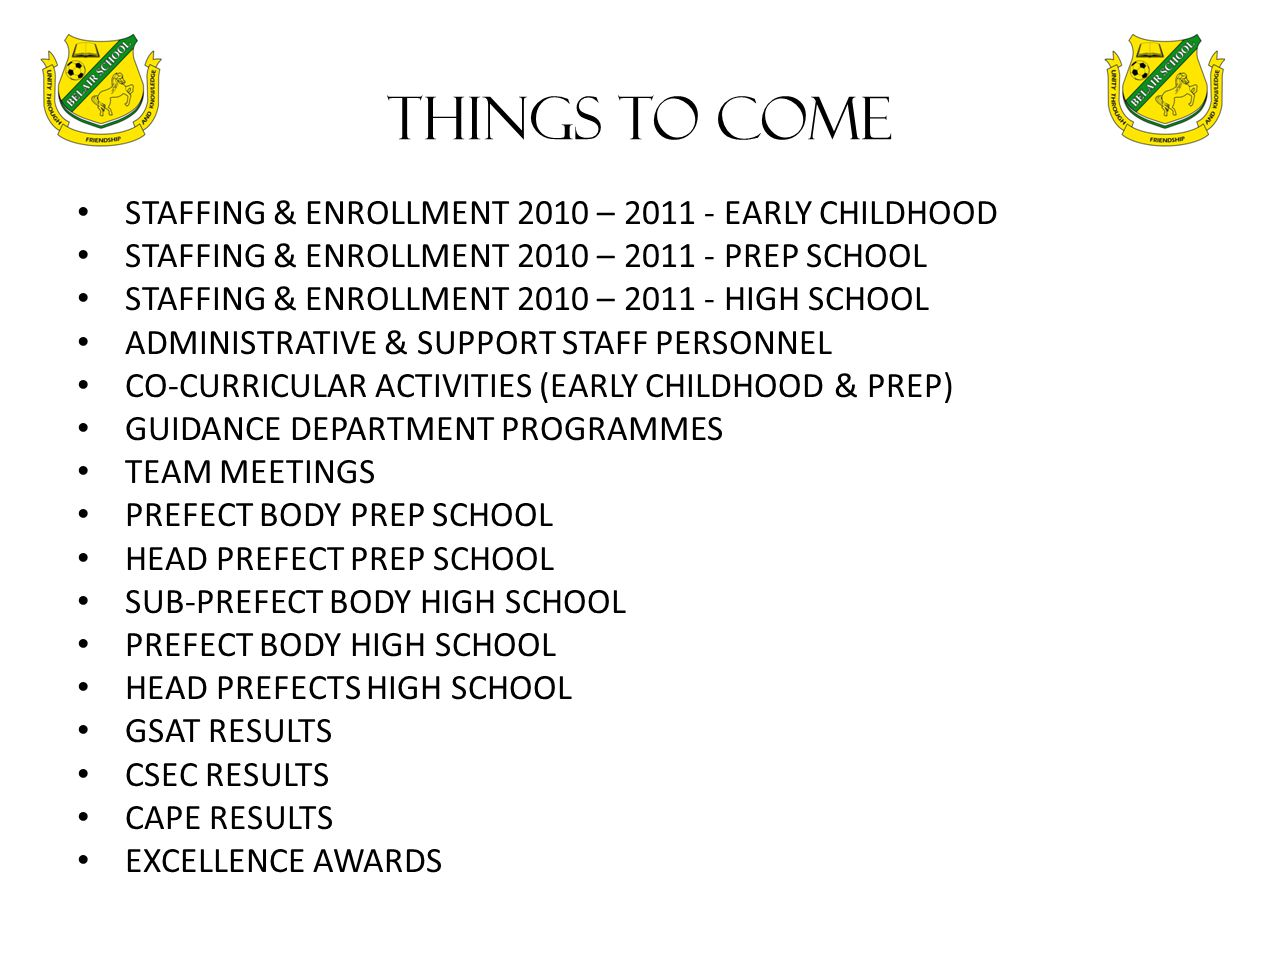 THINGS TO COME STAFFING & ENROLLMENT 2010 – 2011 - EARLY CHILDHOOD